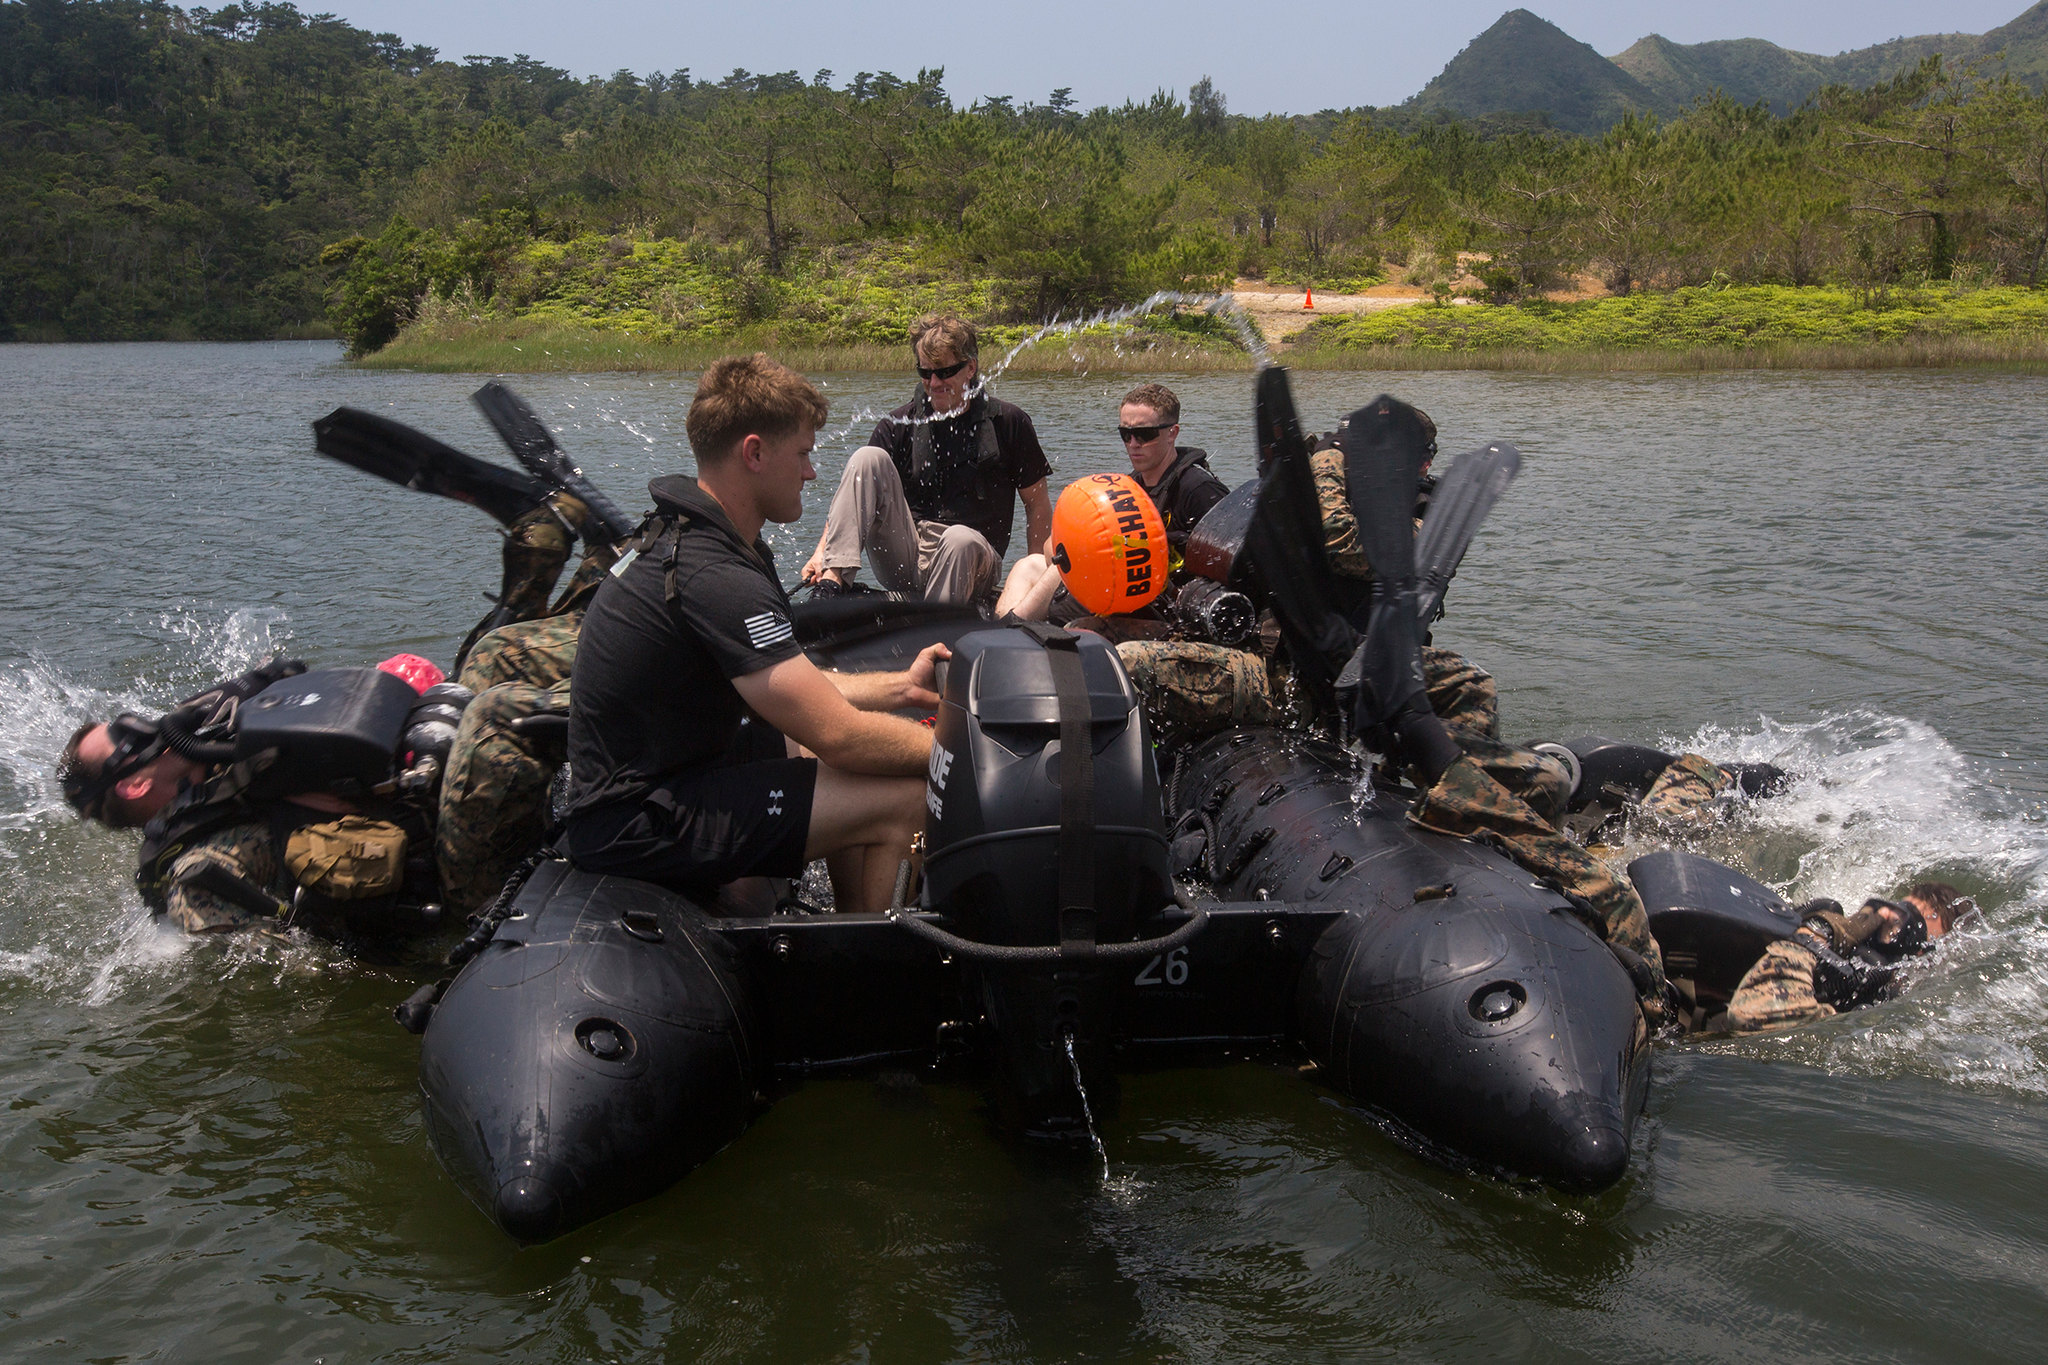 Reconnaissance Marines roll backward into the water during training at Camp Hansen, Okinawa, Japan, May 13, 2019. (Lance Cpl. Cameron E. Parks/Marine Corps)